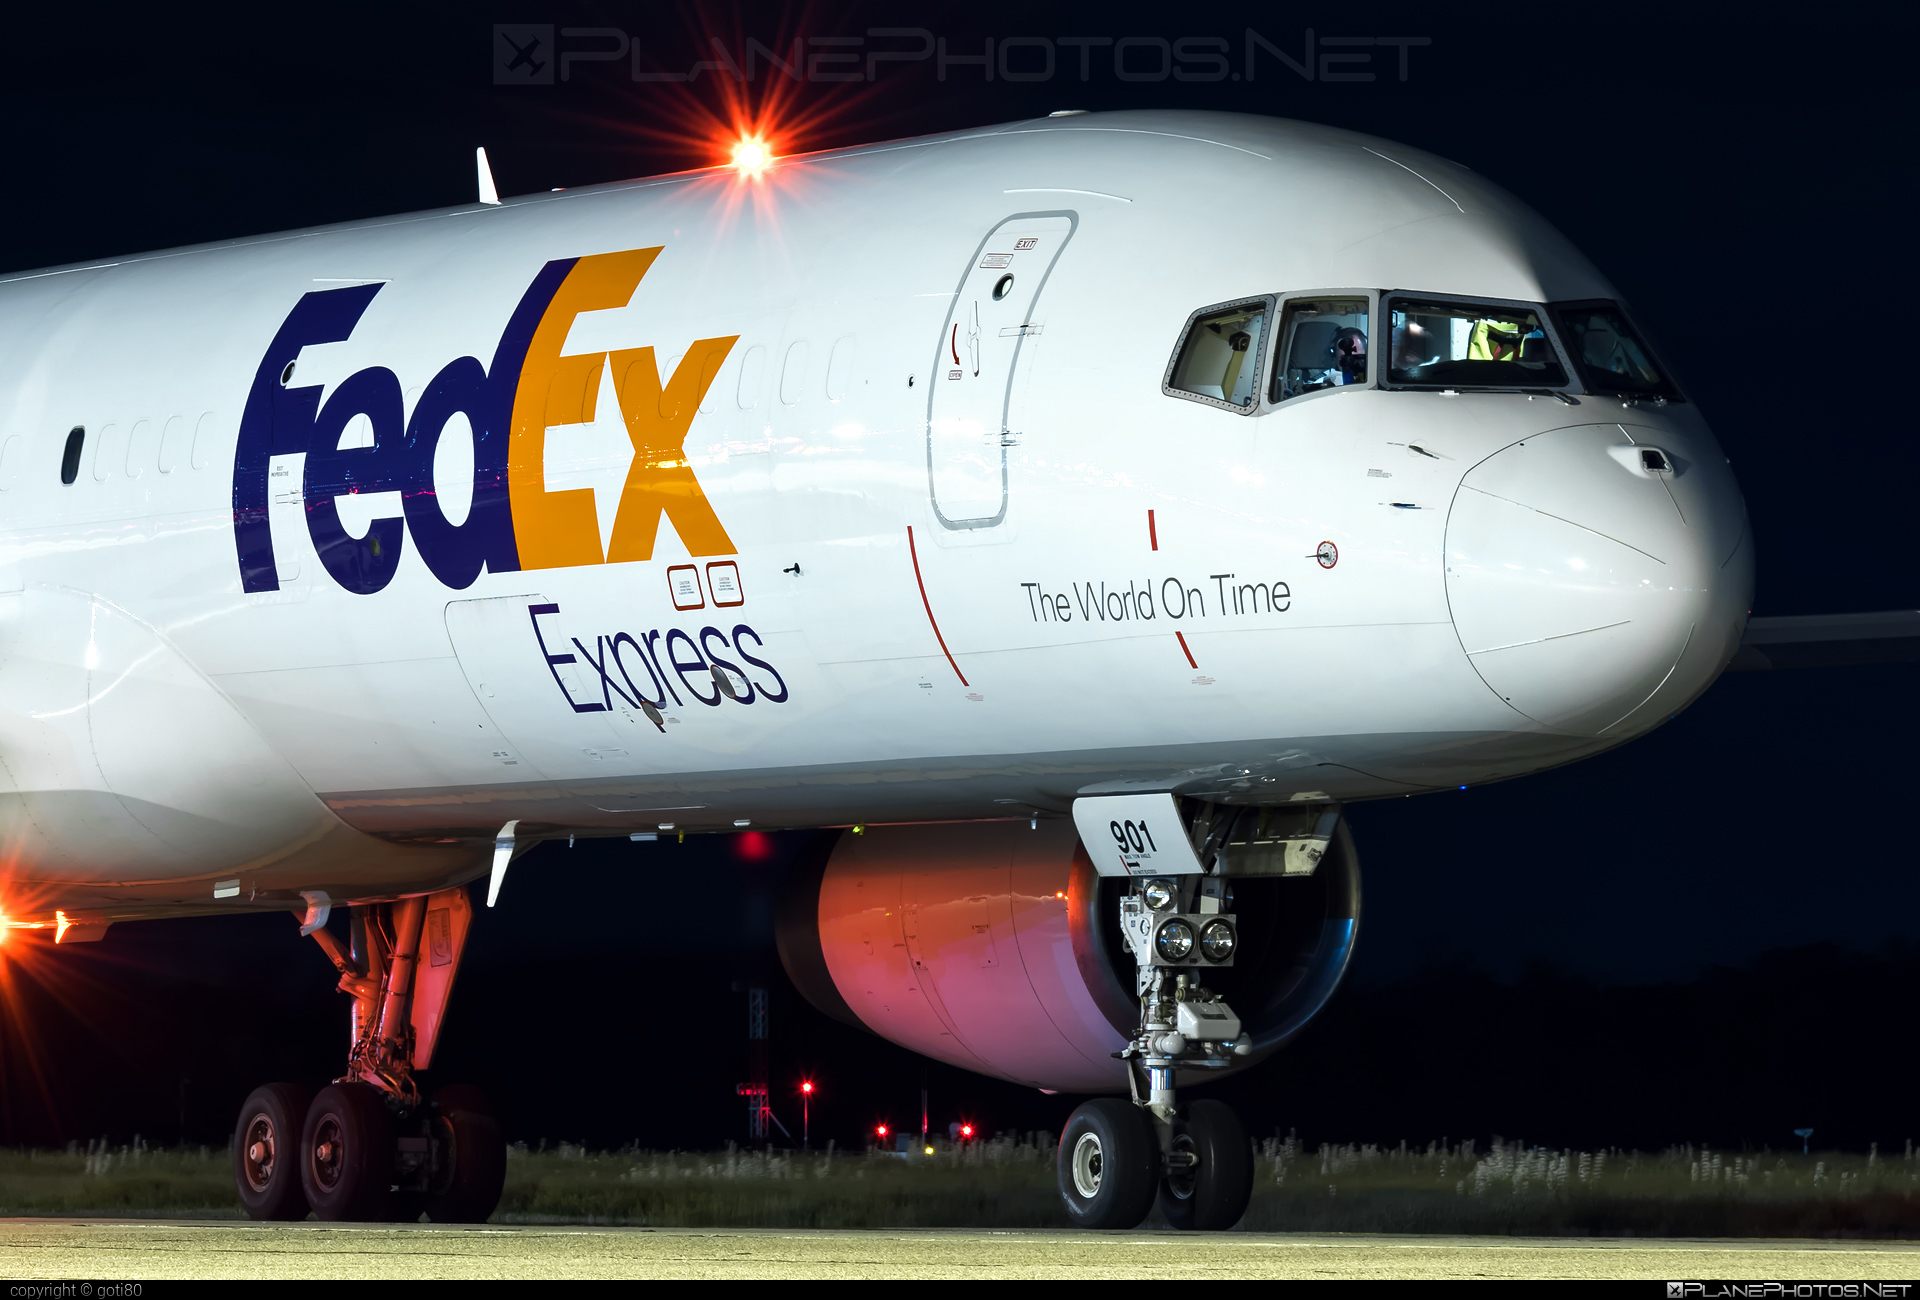 Boeing 757-200SF - N901FD operated by FedEx Express #b757 #boeing #boeing757 #fedex #fedexairlines #fedexexpress